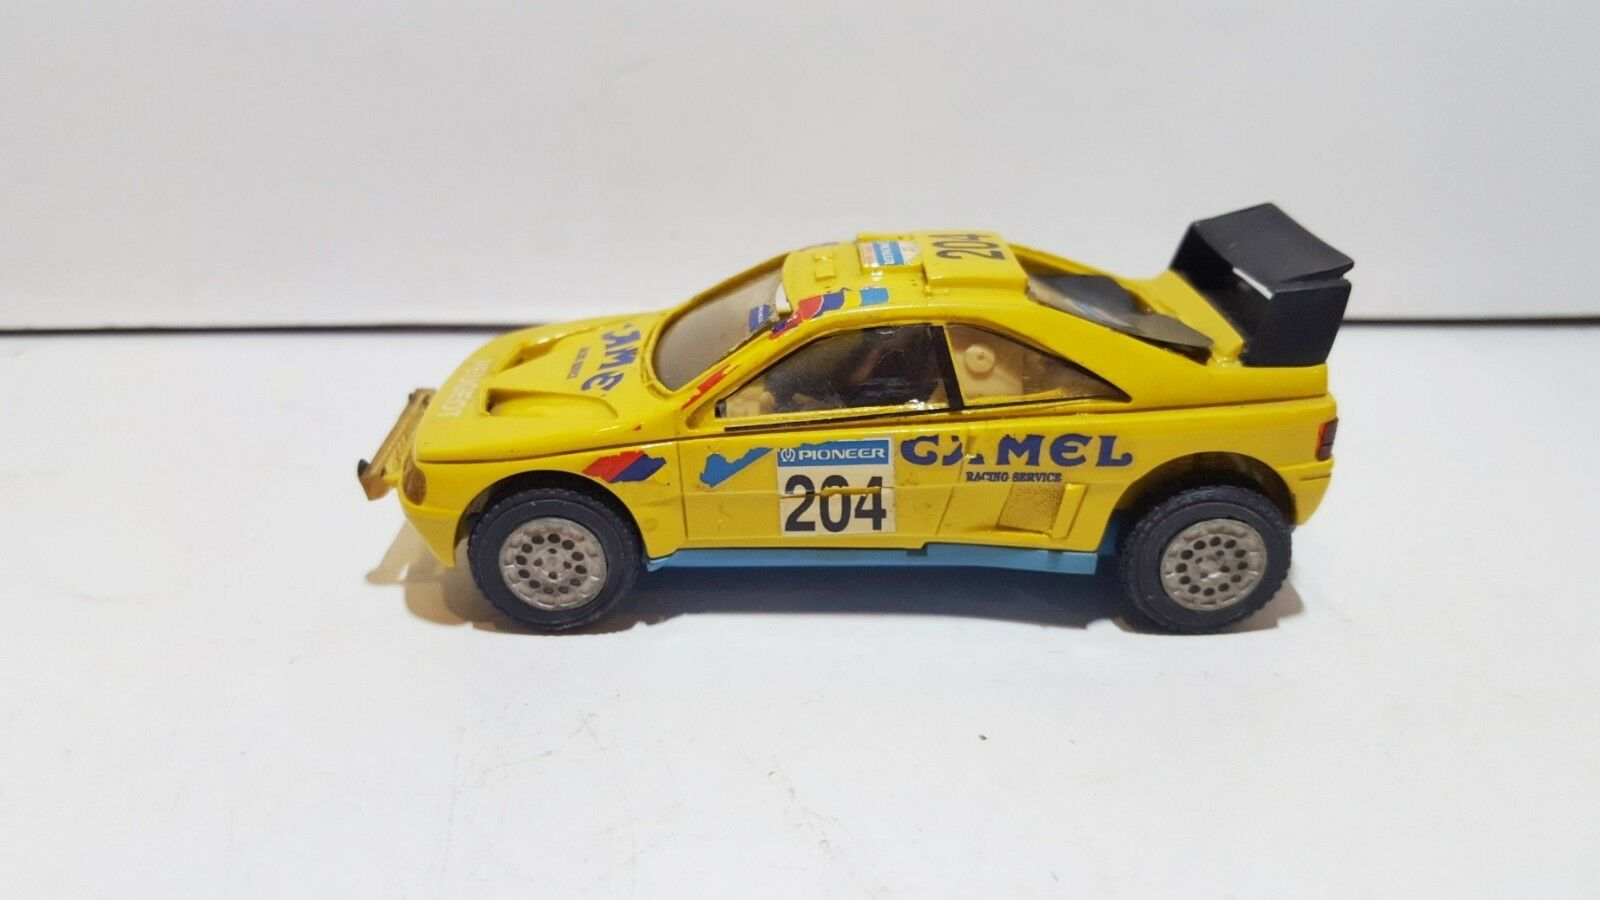 HECO MODELS France Resin Peugeot 405 T16 4x4 Paris-Dakar Hand made 1 43 no box